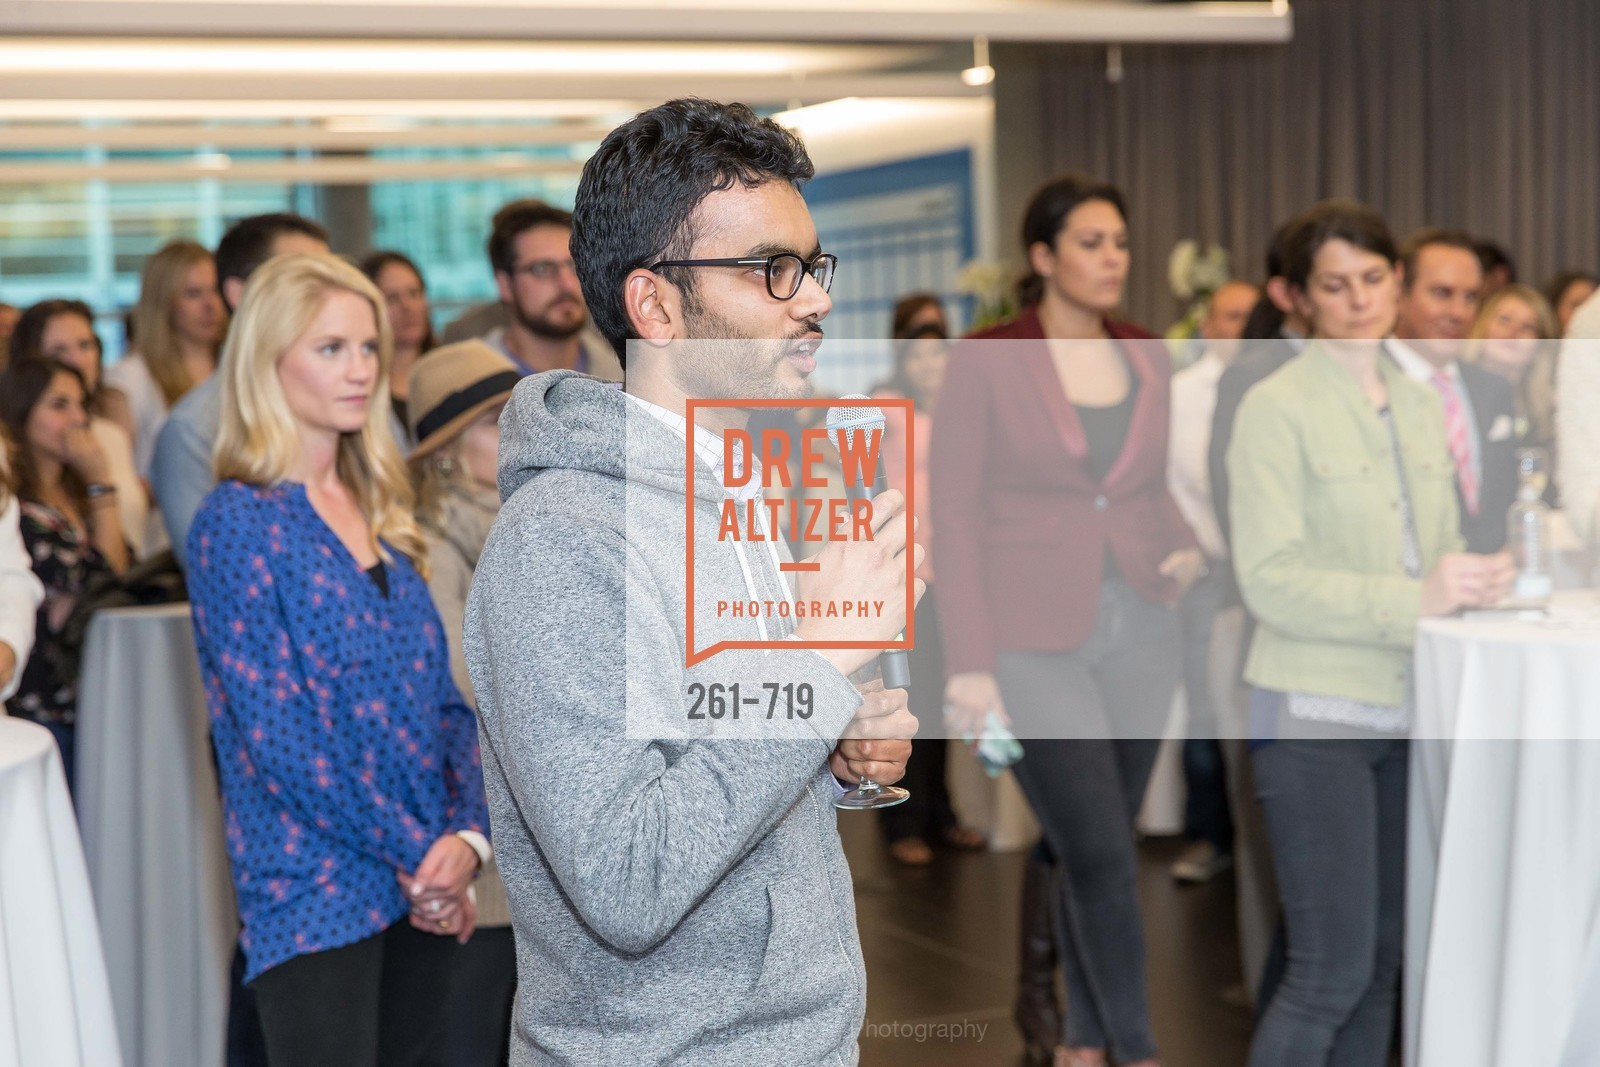 Extras, THE LINKEDIN Discussion Series featuring Jack and Suzy Welch with LinkedIn Executive Editor Dan Roth, May 12th, 2015, Photo,Drew Altizer, Drew Altizer Photography, full-service agency, private events, San Francisco photographer, photographer california